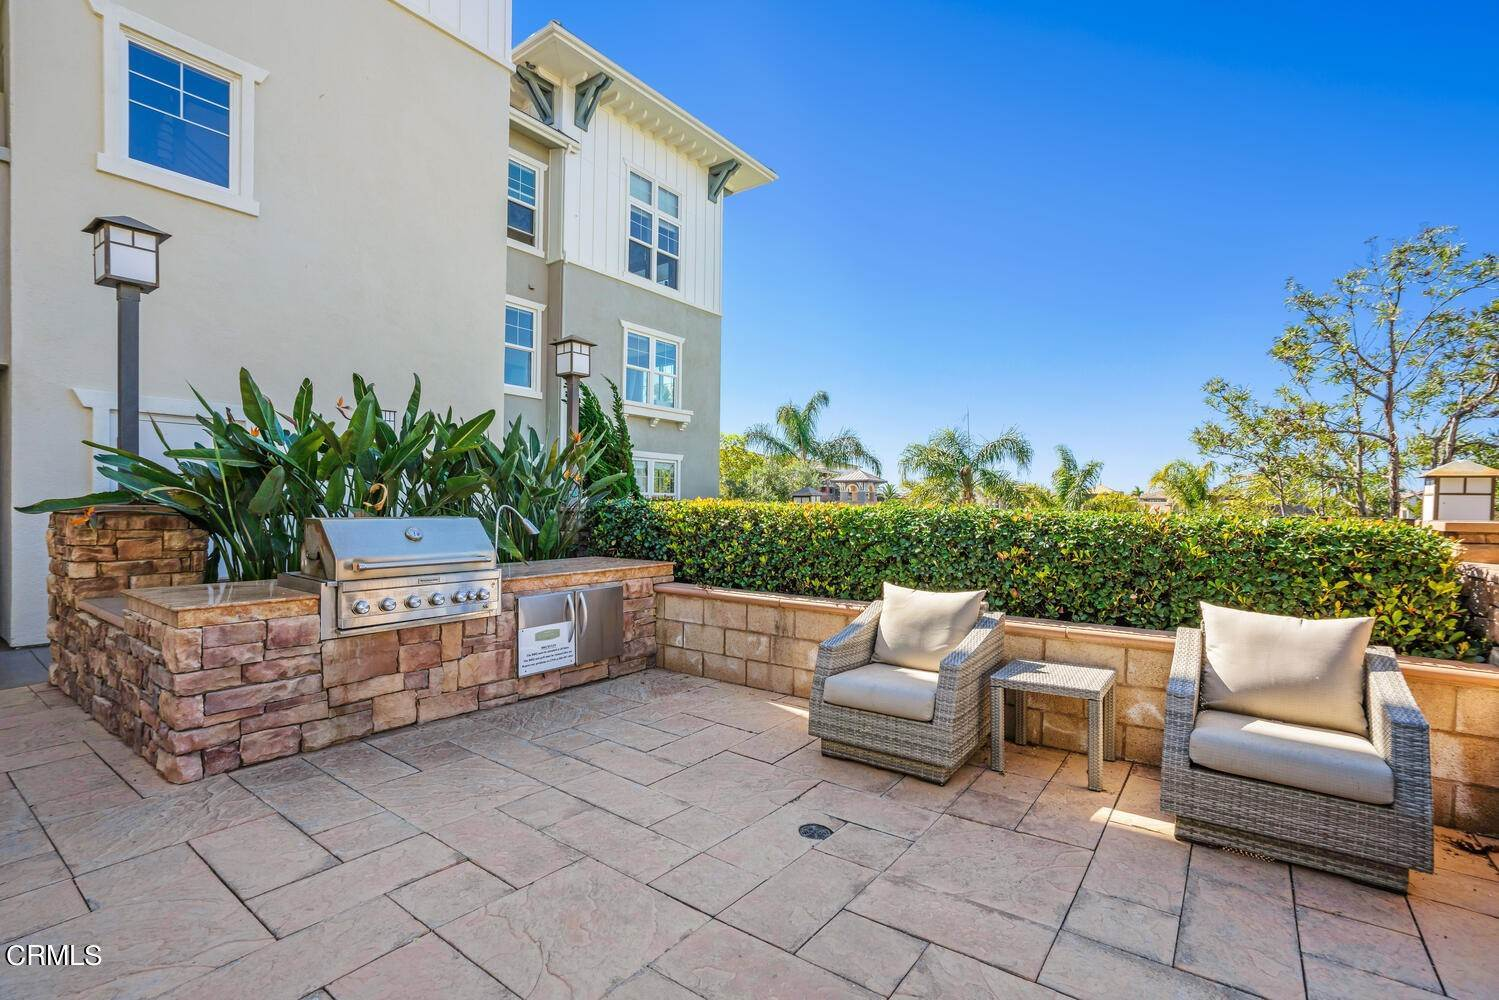 25. Condominiums for Sale at 1405 Windshore Way Oxnard, California 93035 United States